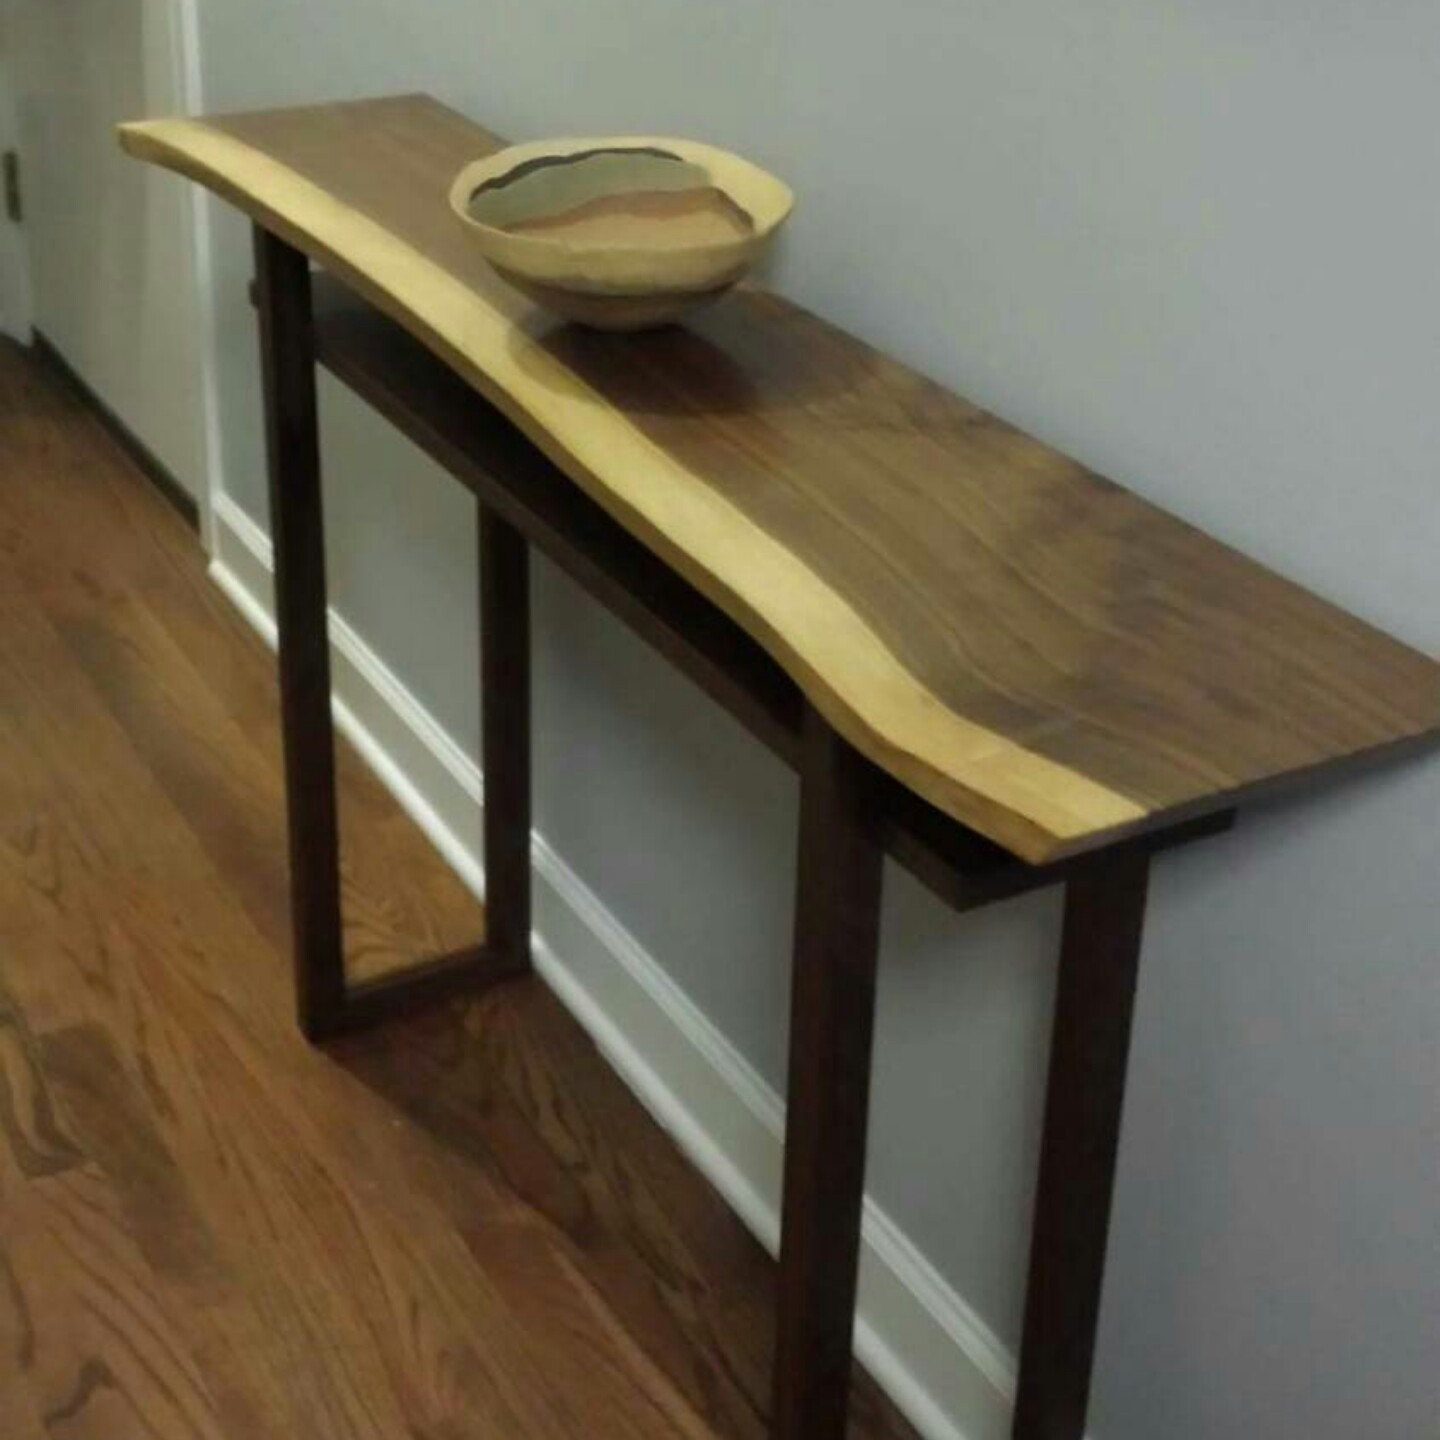 Merveilleux Our Latest Live Edge Walnut Hall Table Now At Home In Chicago! Each Live  Edge Table Is So Uniquely Beautiful.